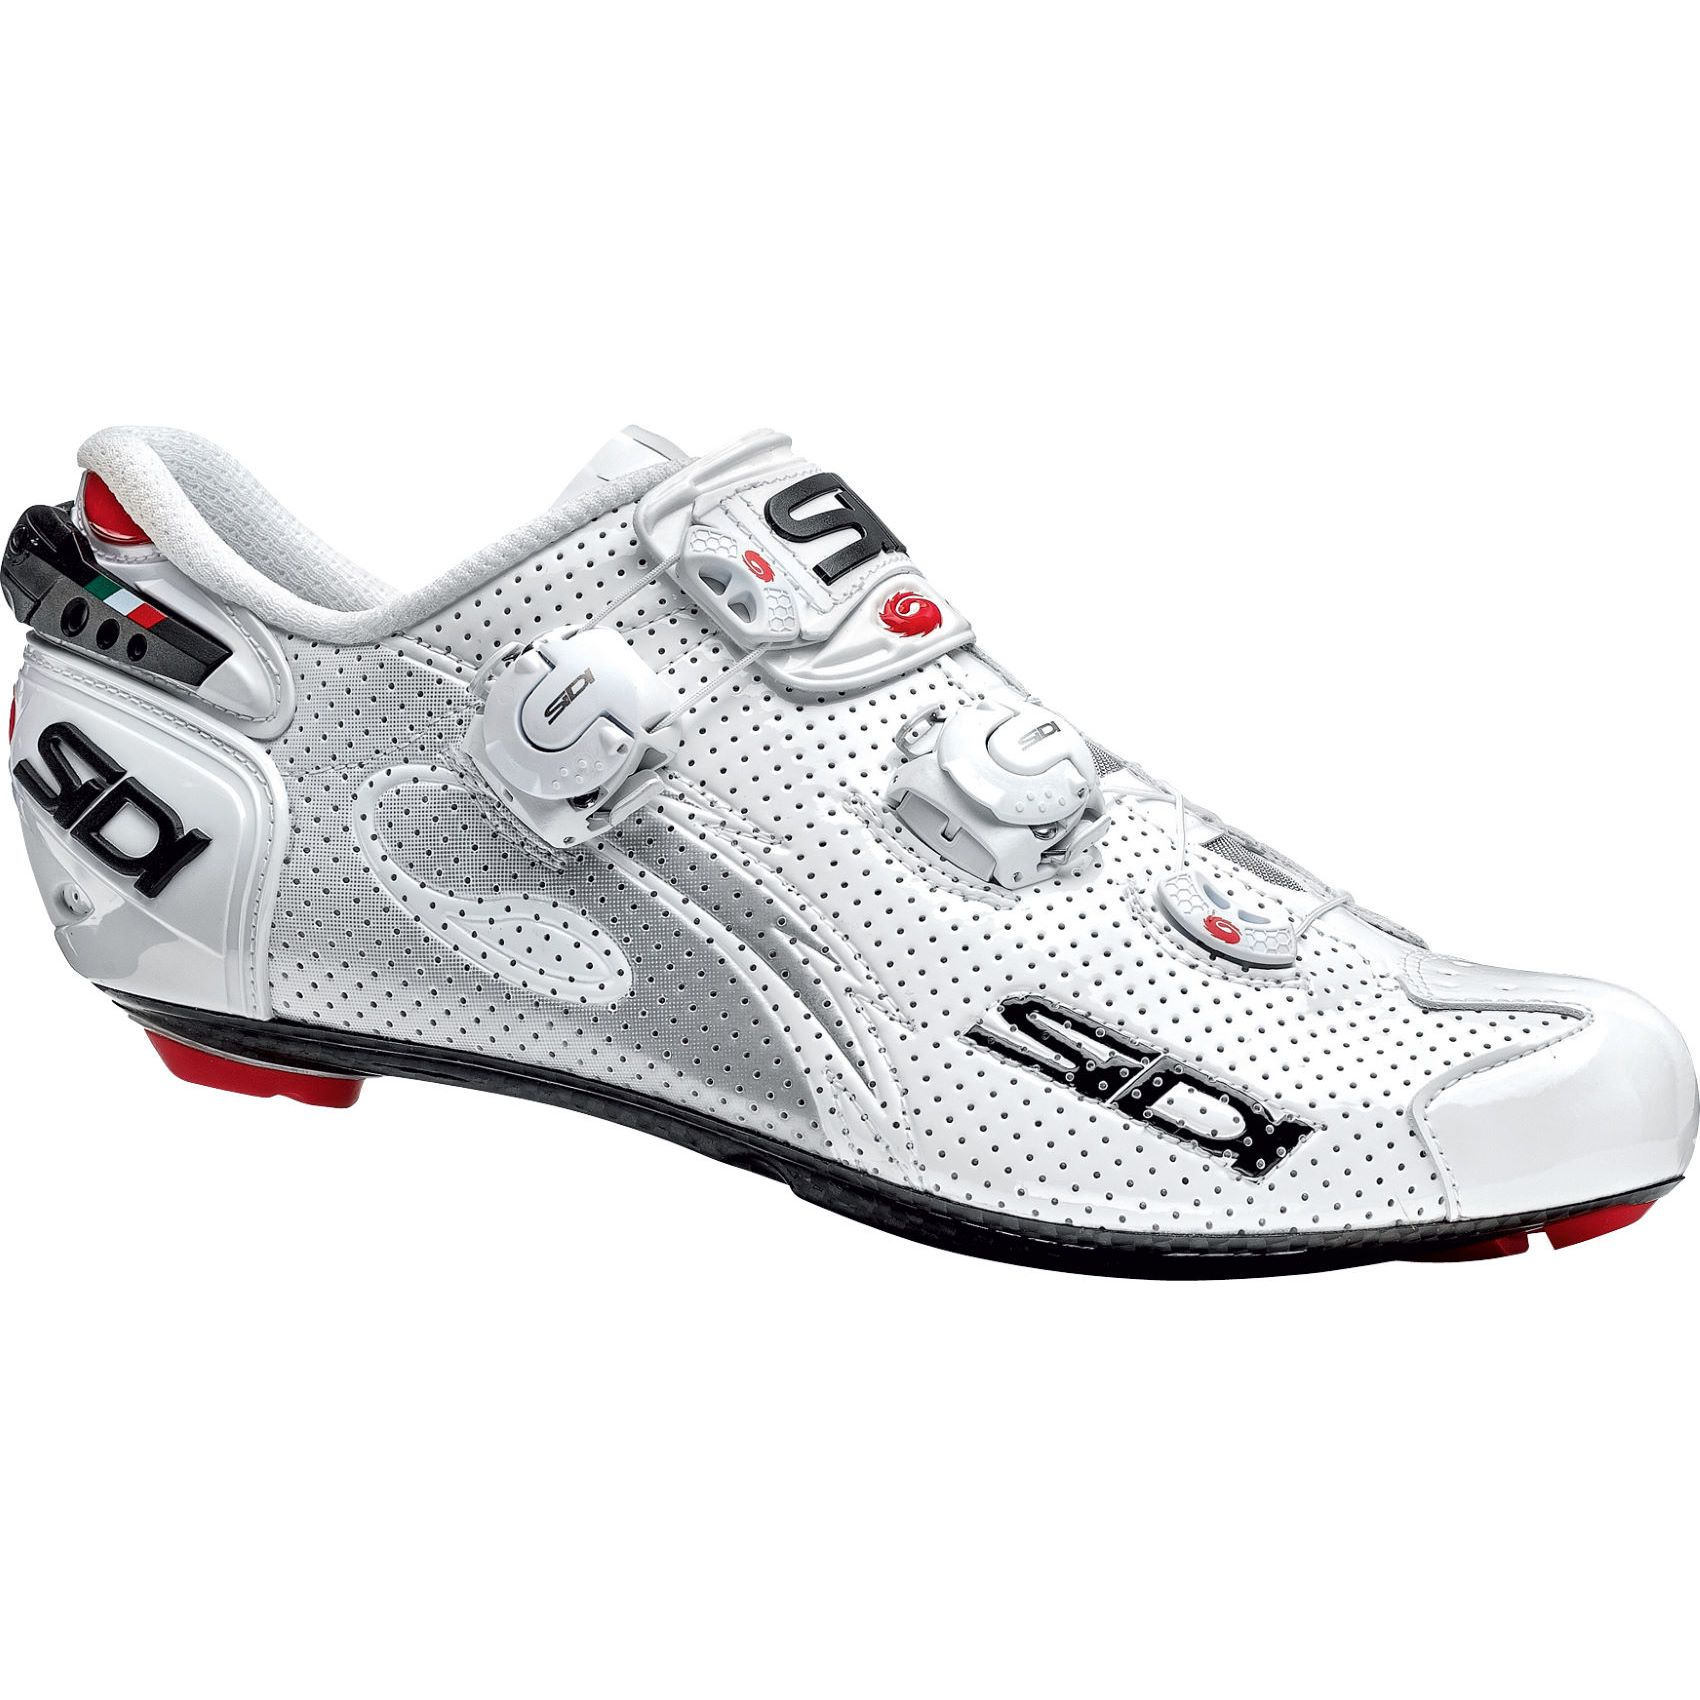 Wiggle | Sidi Wire Carbon Air Road Shoe